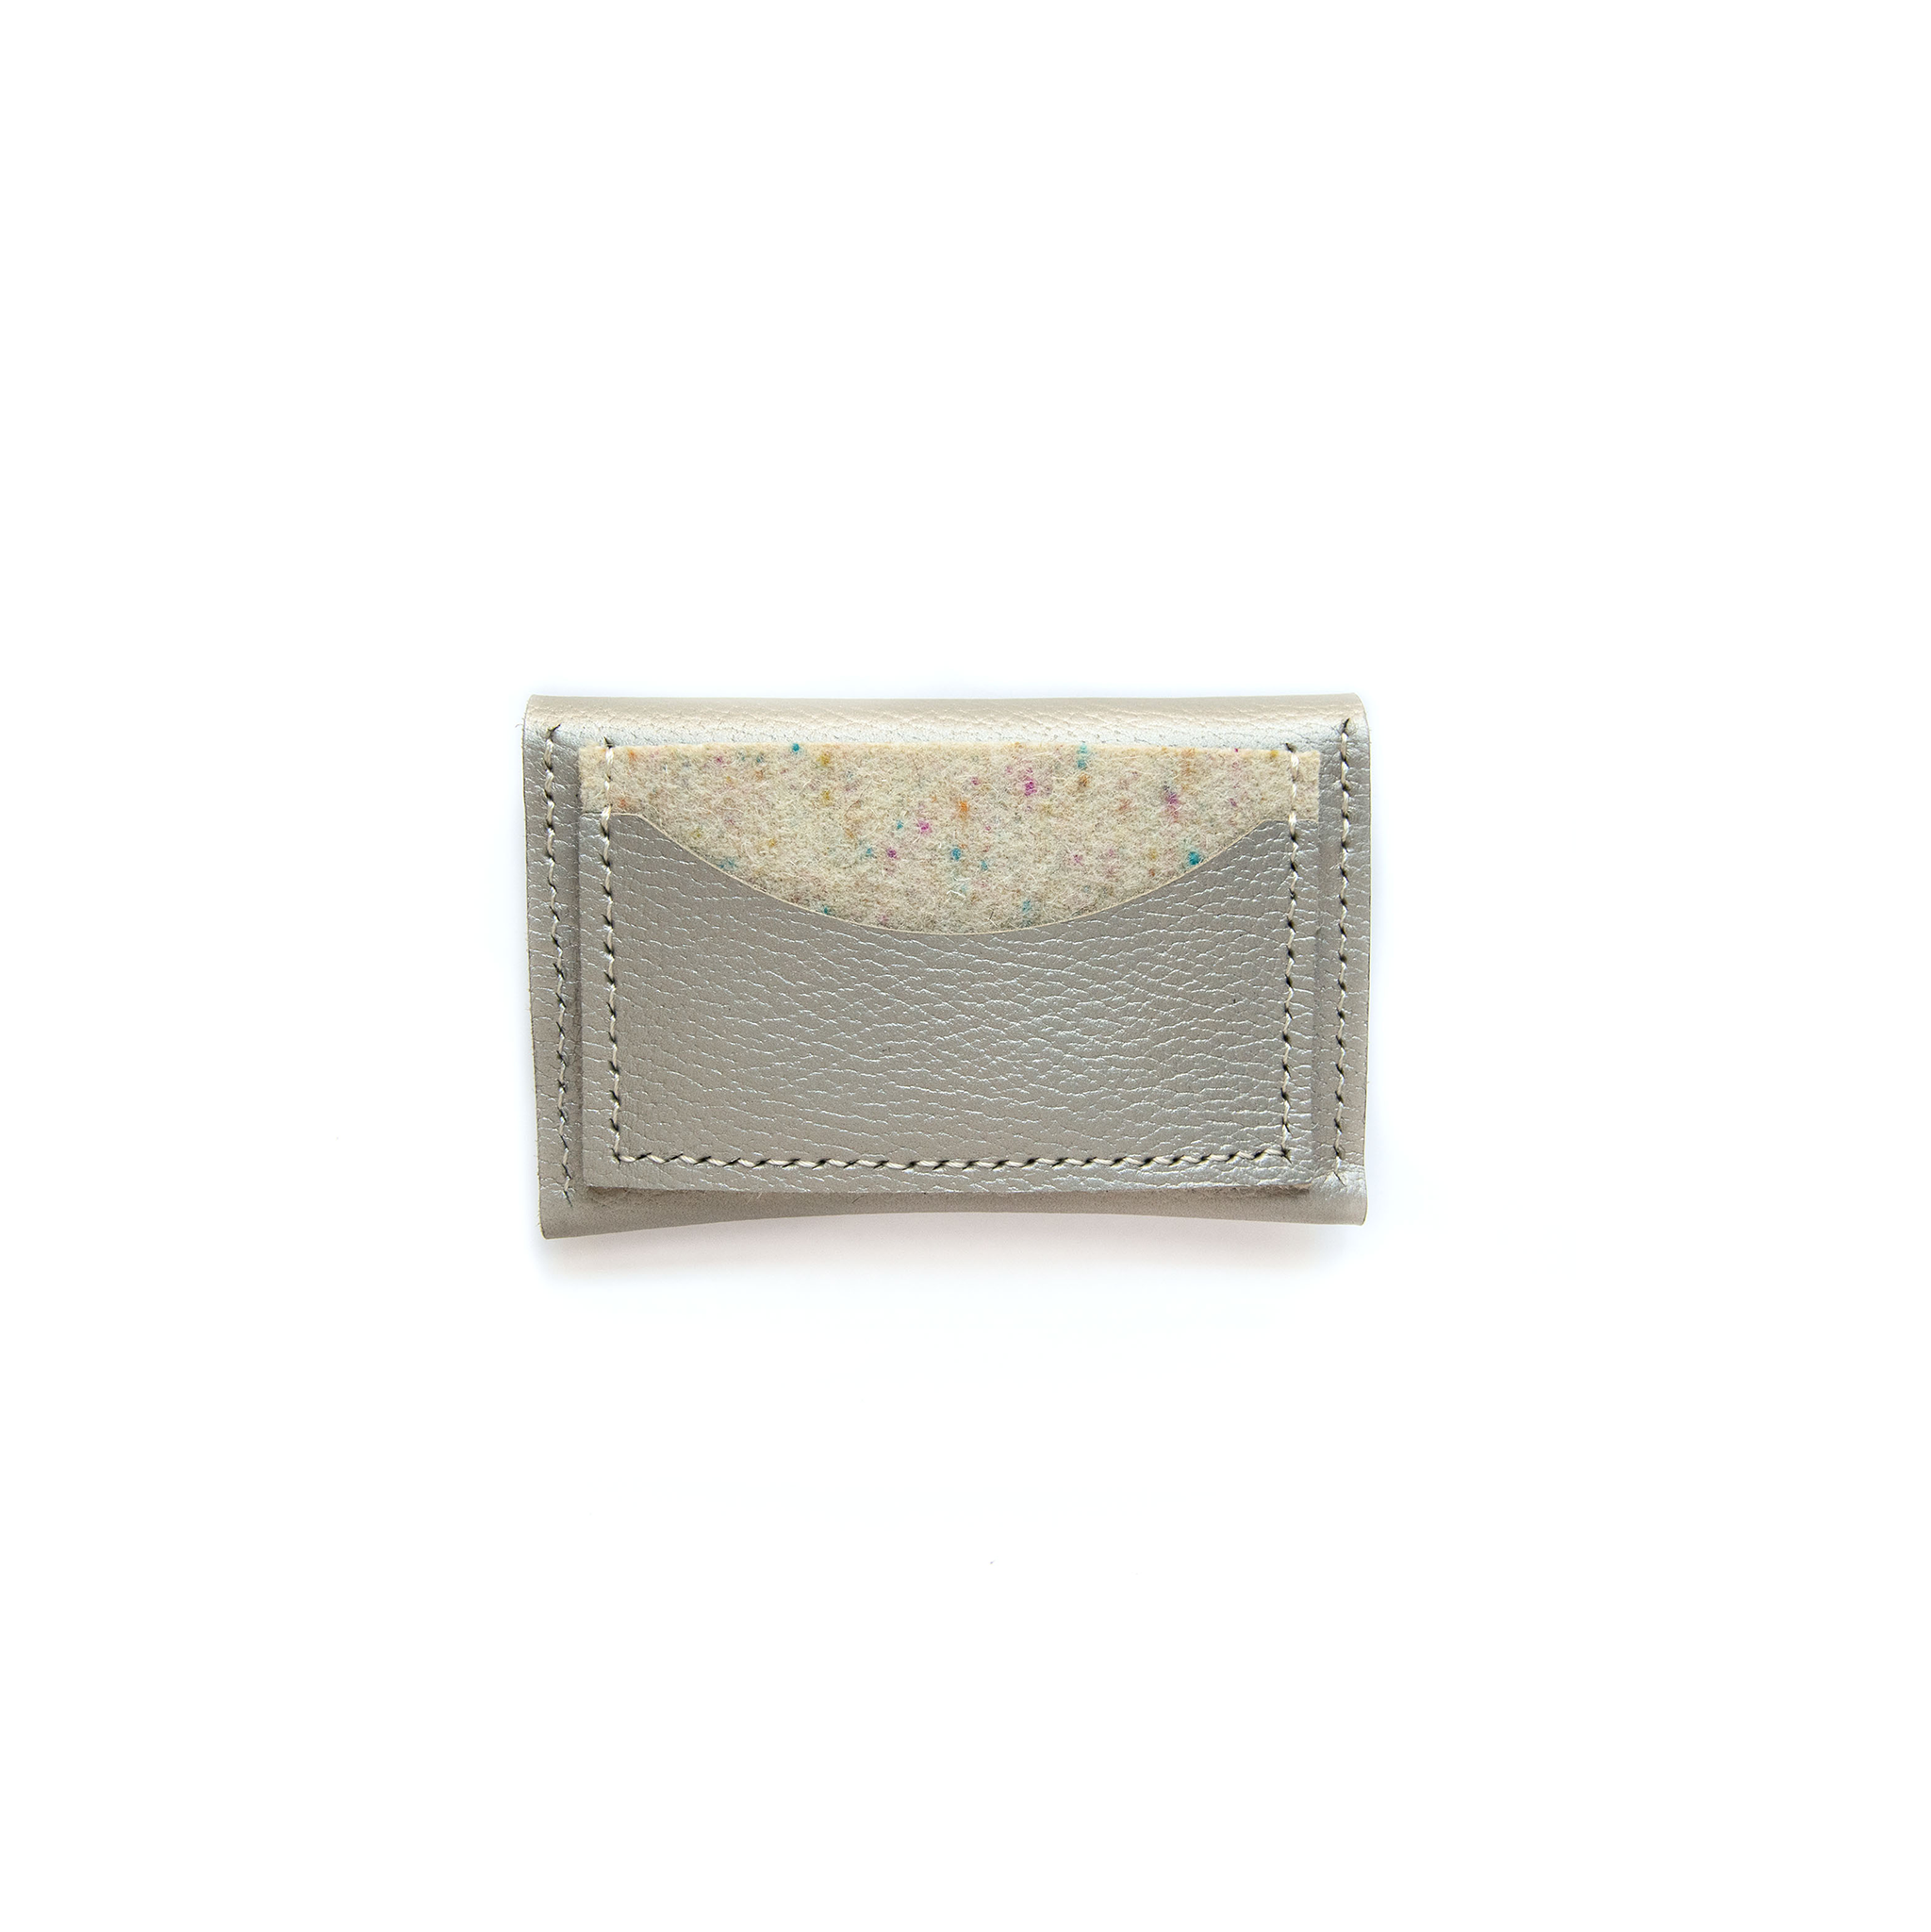 Half Moon Leather Card Holder in Pearl & Confetti